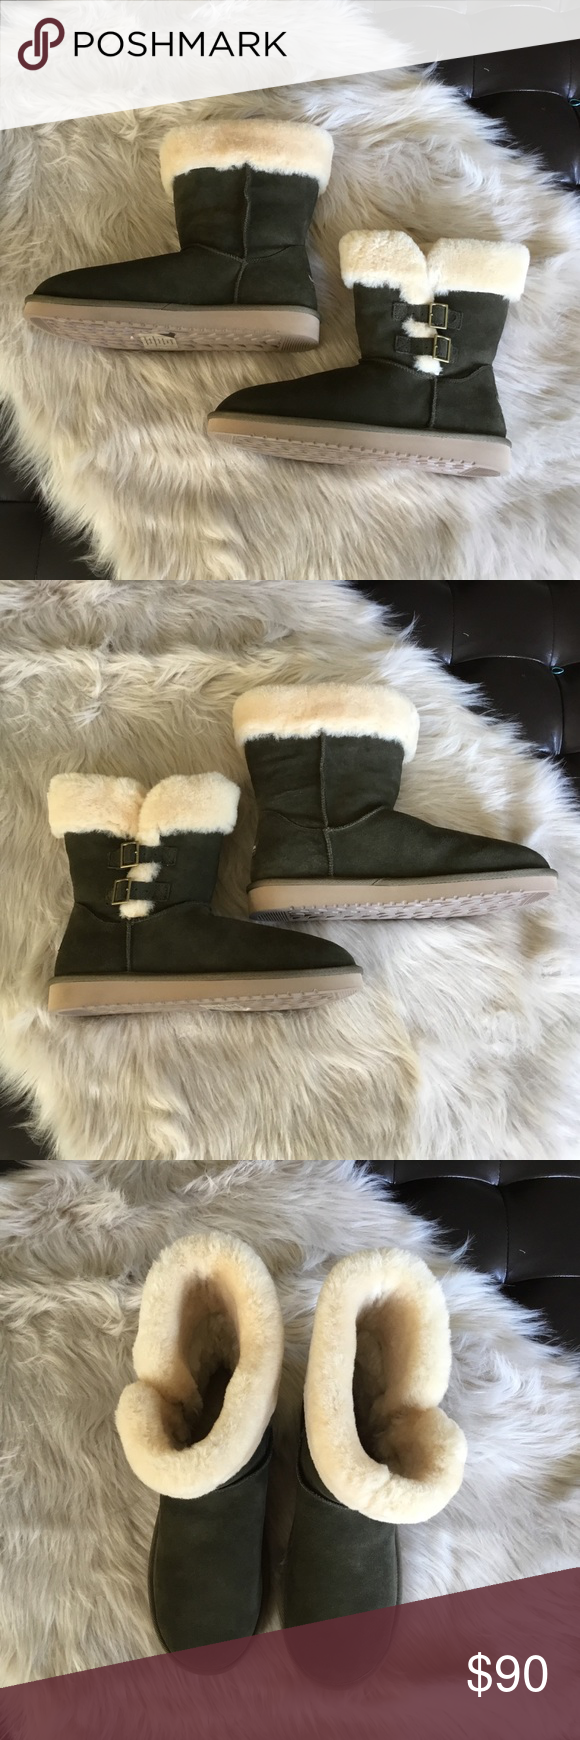 15003e91d19 Koolaburra By Ugg Suede Buckle Boot 11 Olive NWOB New Without Box ...